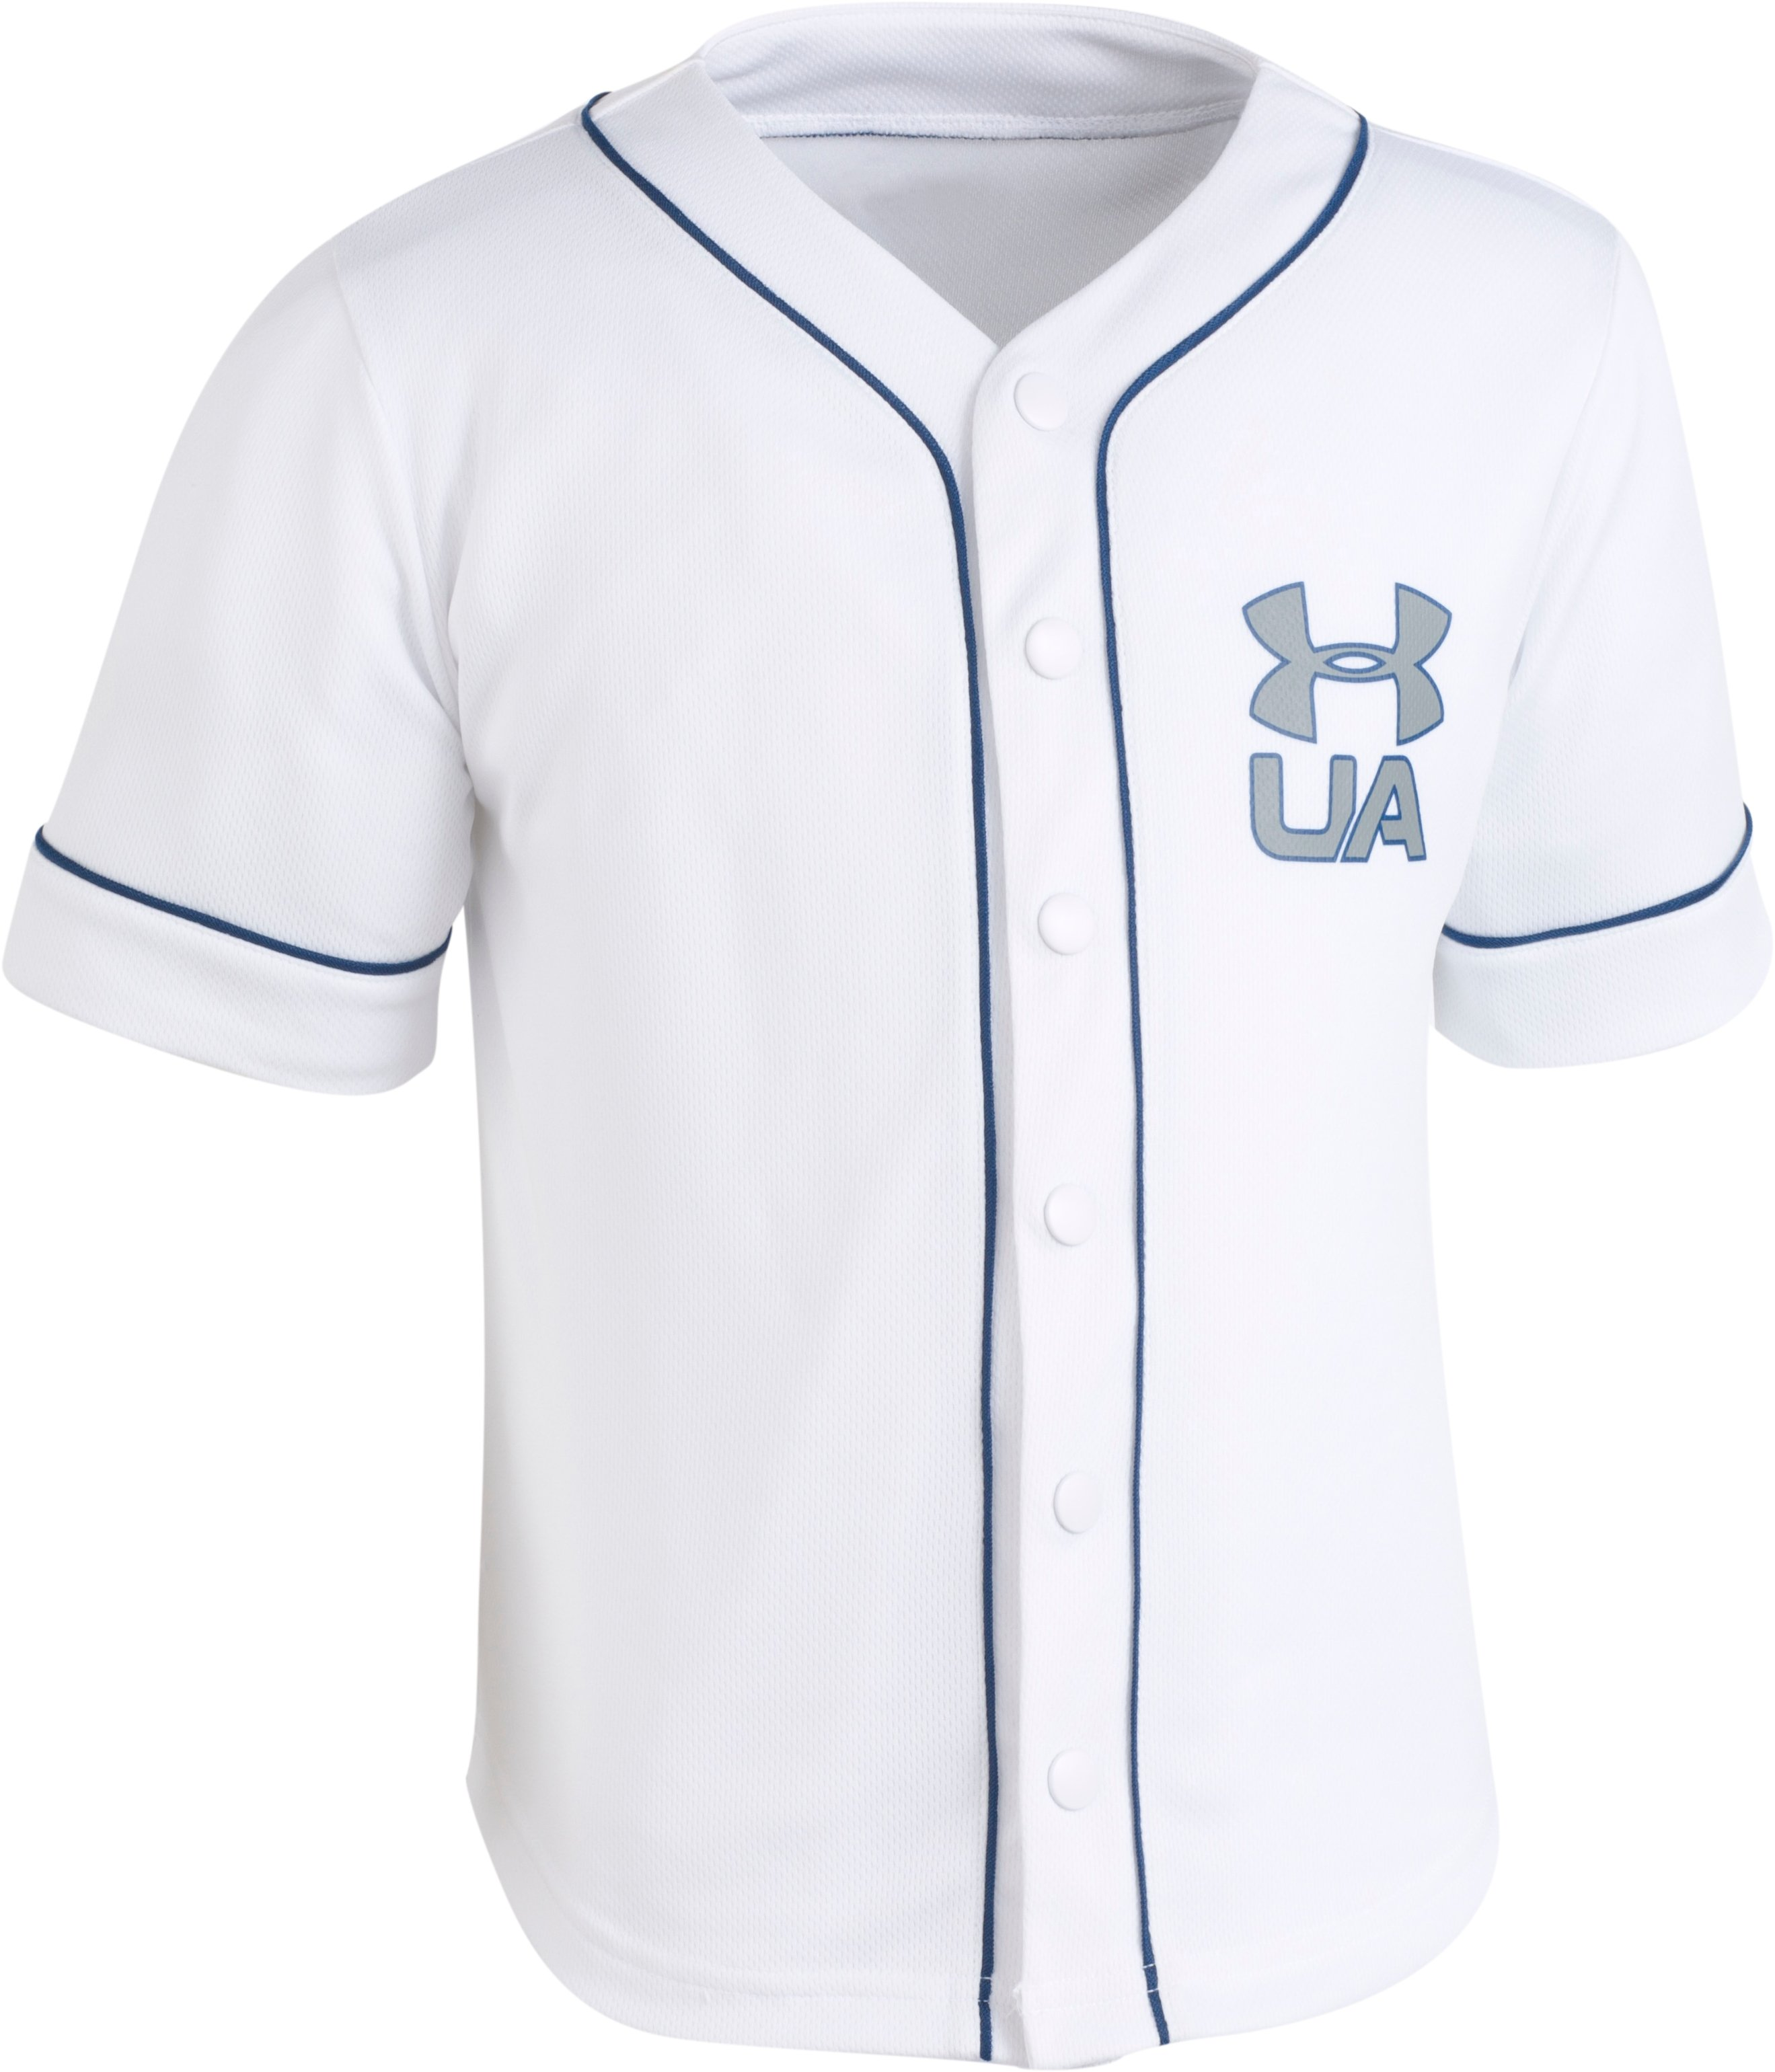 Boys' Toddler UA Homerun Baseball Jersey T-Shirt, White, Laydown